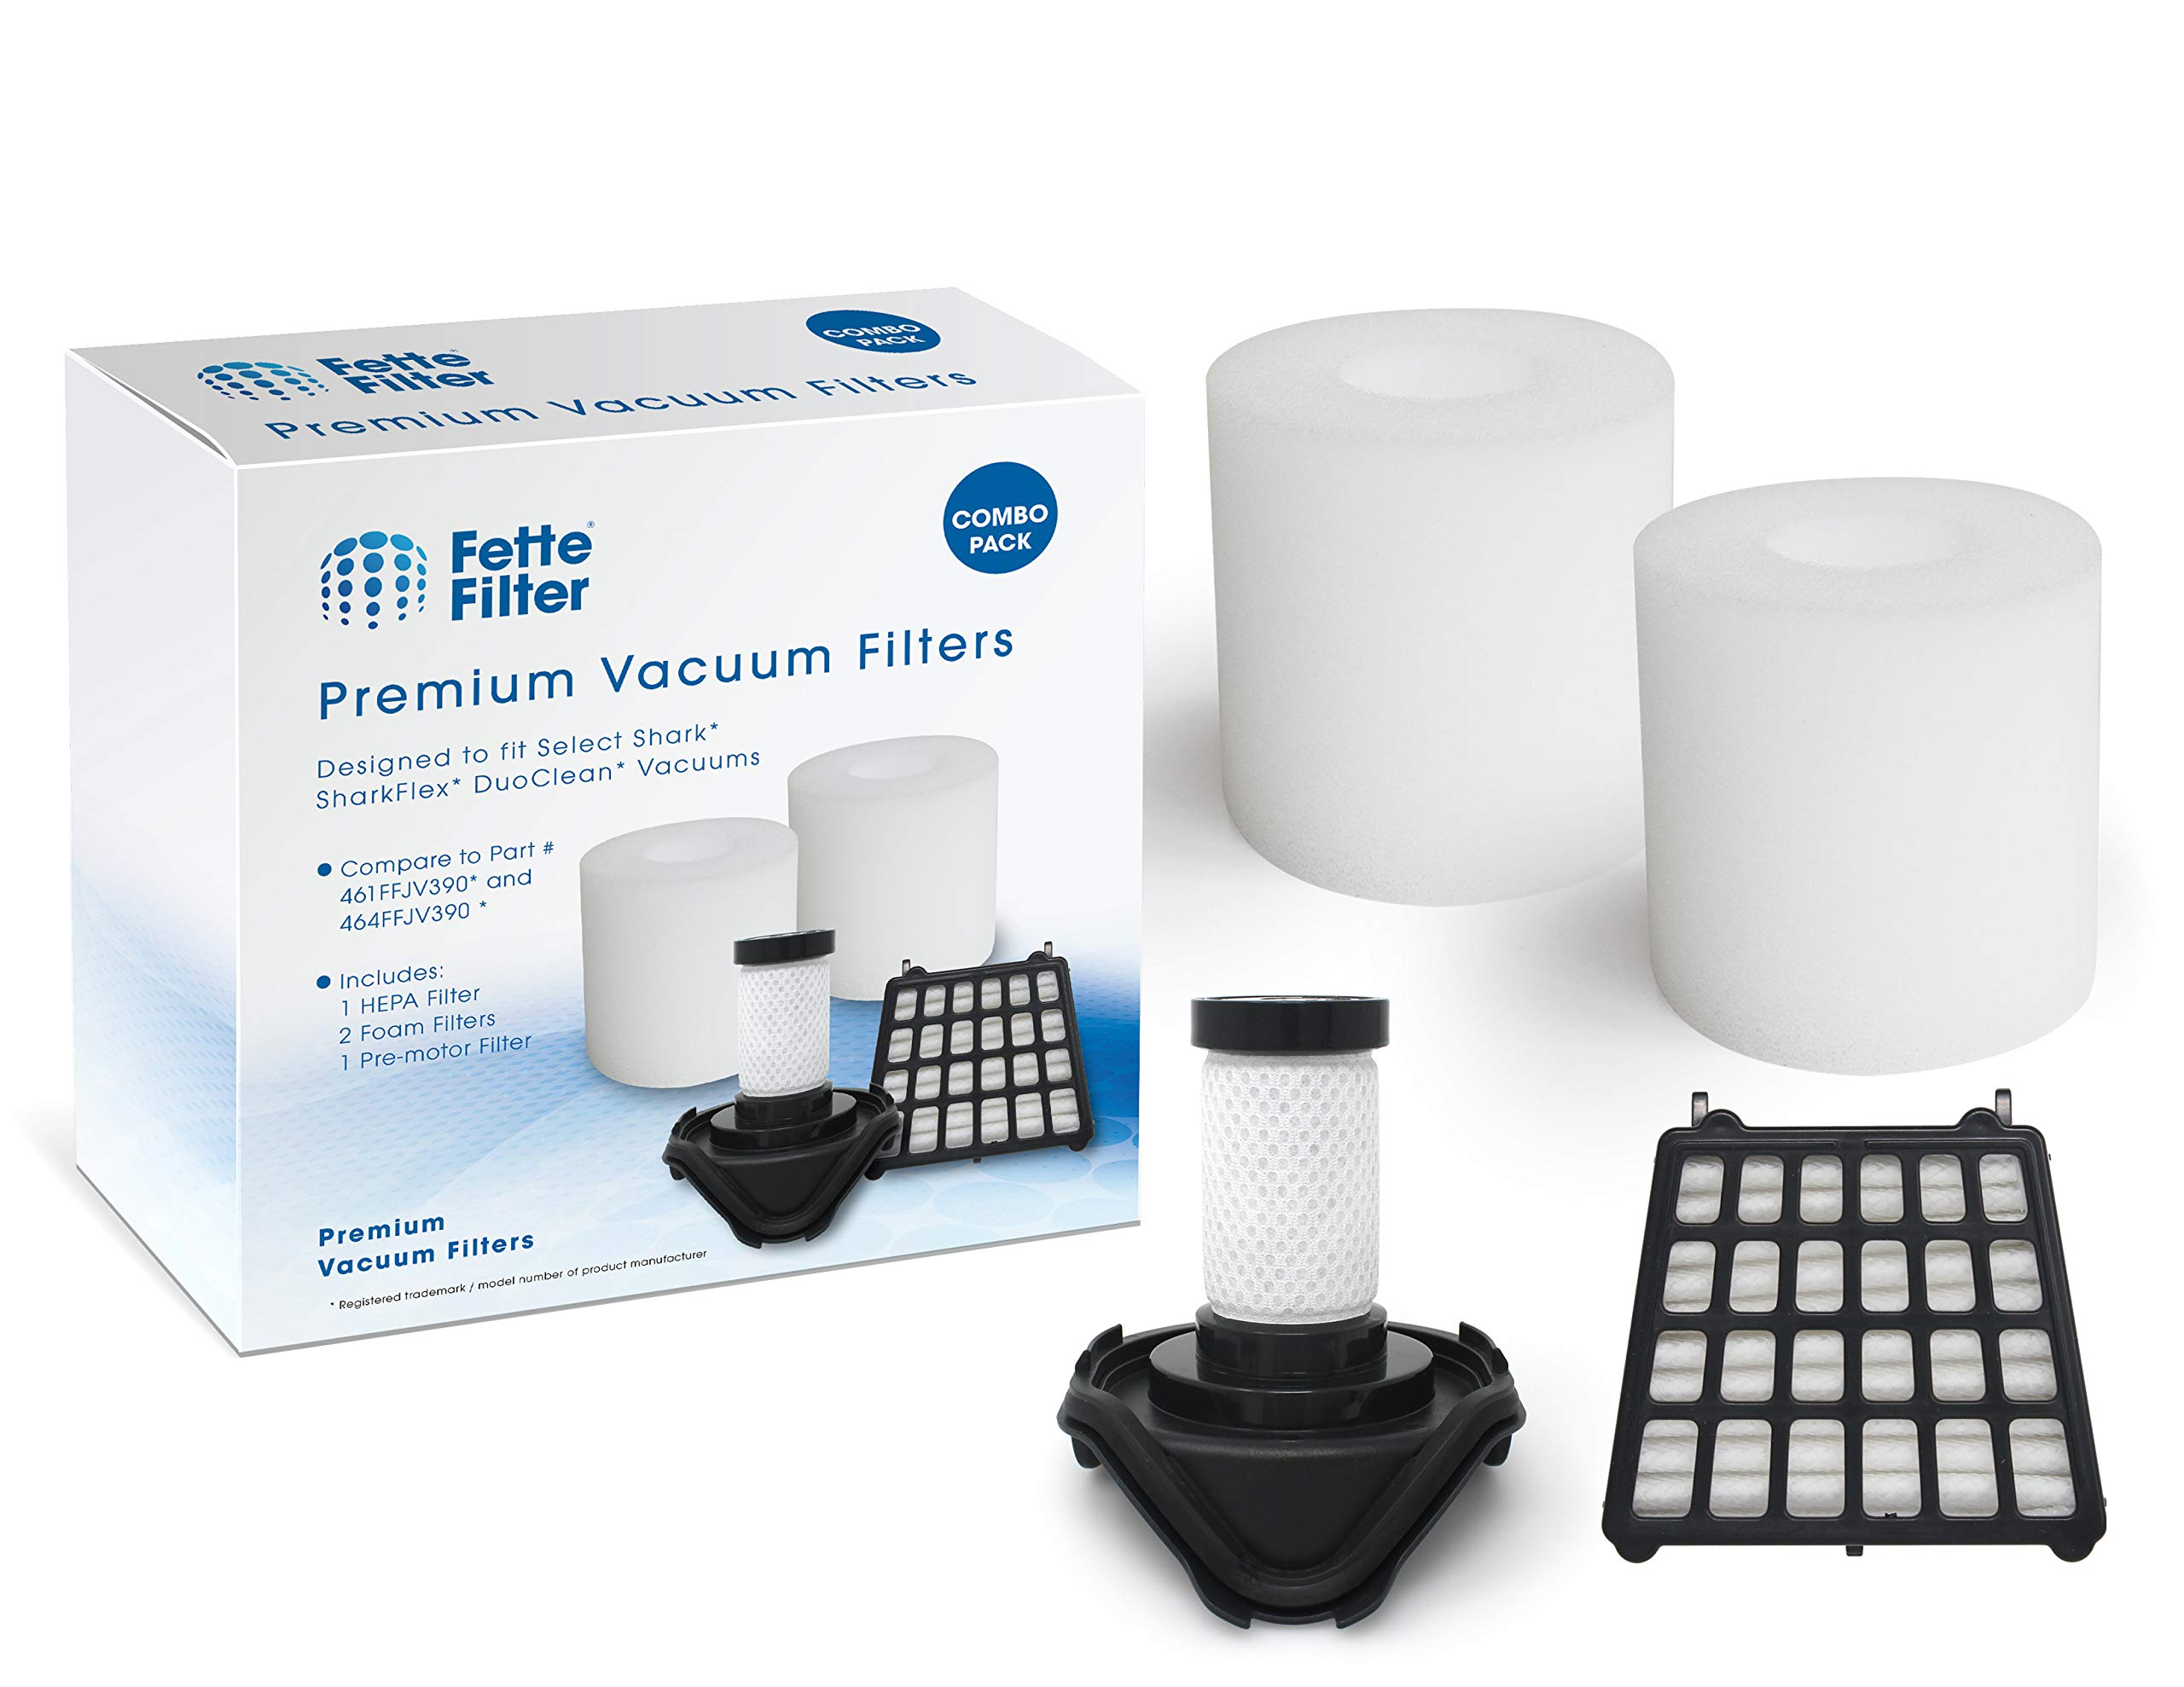 Fette Filter - Vacuum Filters Kit Compatible with SharkFLEX DuoClean Corded Ultra-Light Vacuum Filters. Fits HV390, HV391, HV392. Compare to Part # 461FFJV390 and 464FFJV390. (Combo Pack)